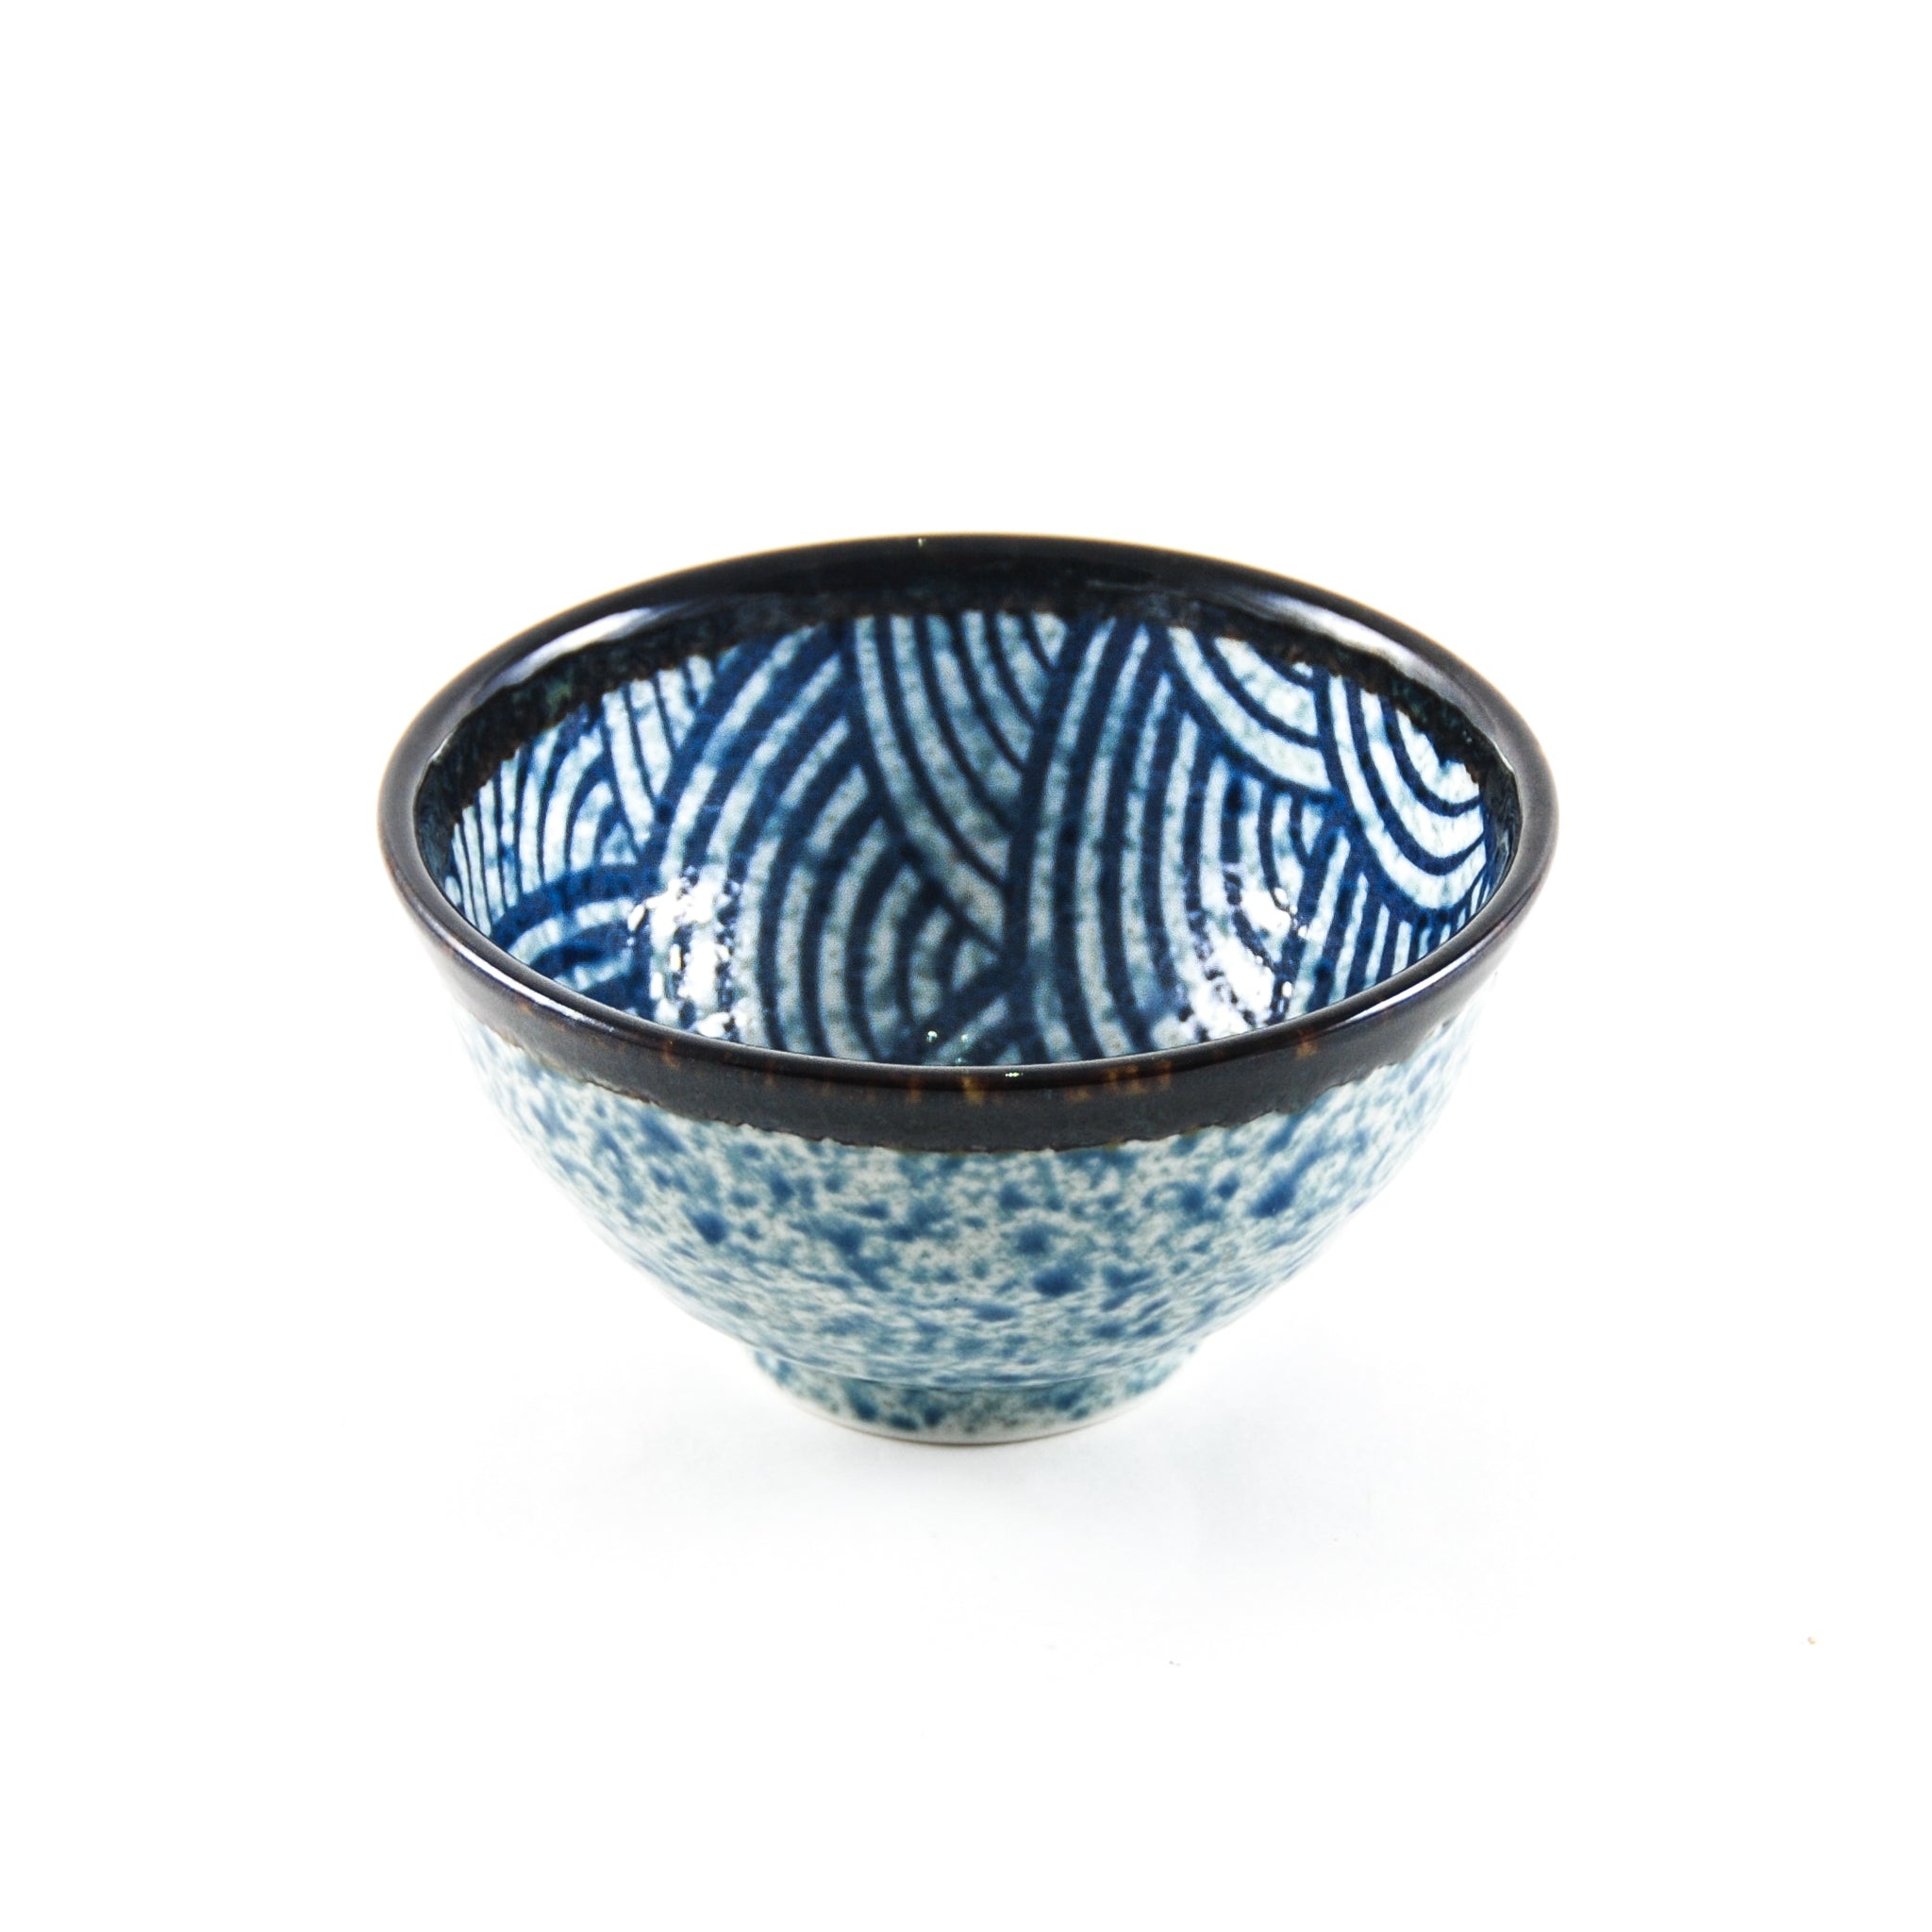 Kiji Stoneware & Ceramics Blue Wave Rice Bowl Tableware Japanese Tableware Japanese Food